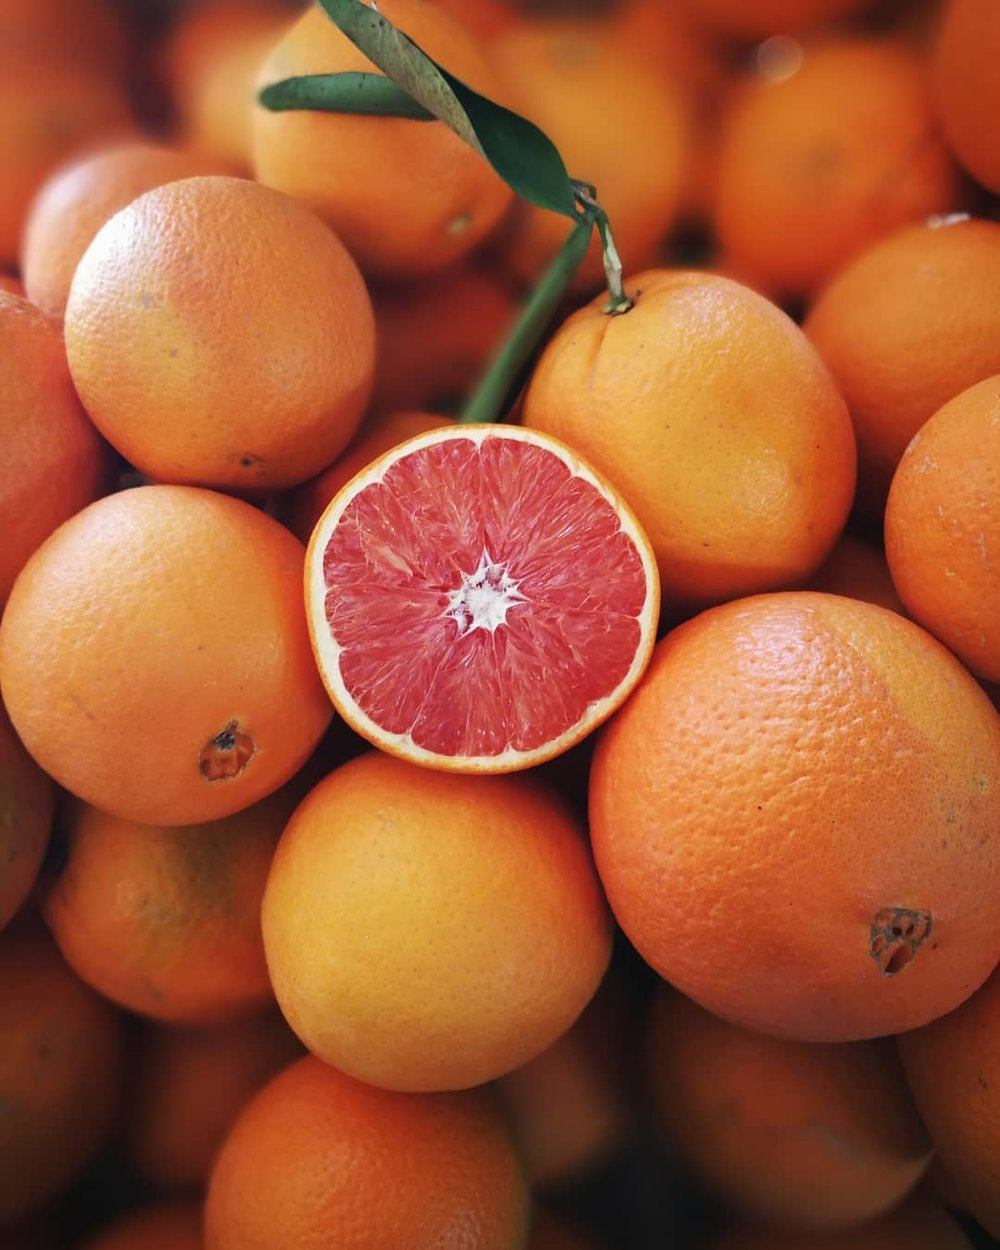 CARA-CARA Navel Oranges - Cara-Cara Navels are thought to be a cross/mutation of the Washington Navel . The Cara has red flesh similar to that of a Ruby-Red Grapefruit. Often confused as a blood orange, they are considered a specialty orange.